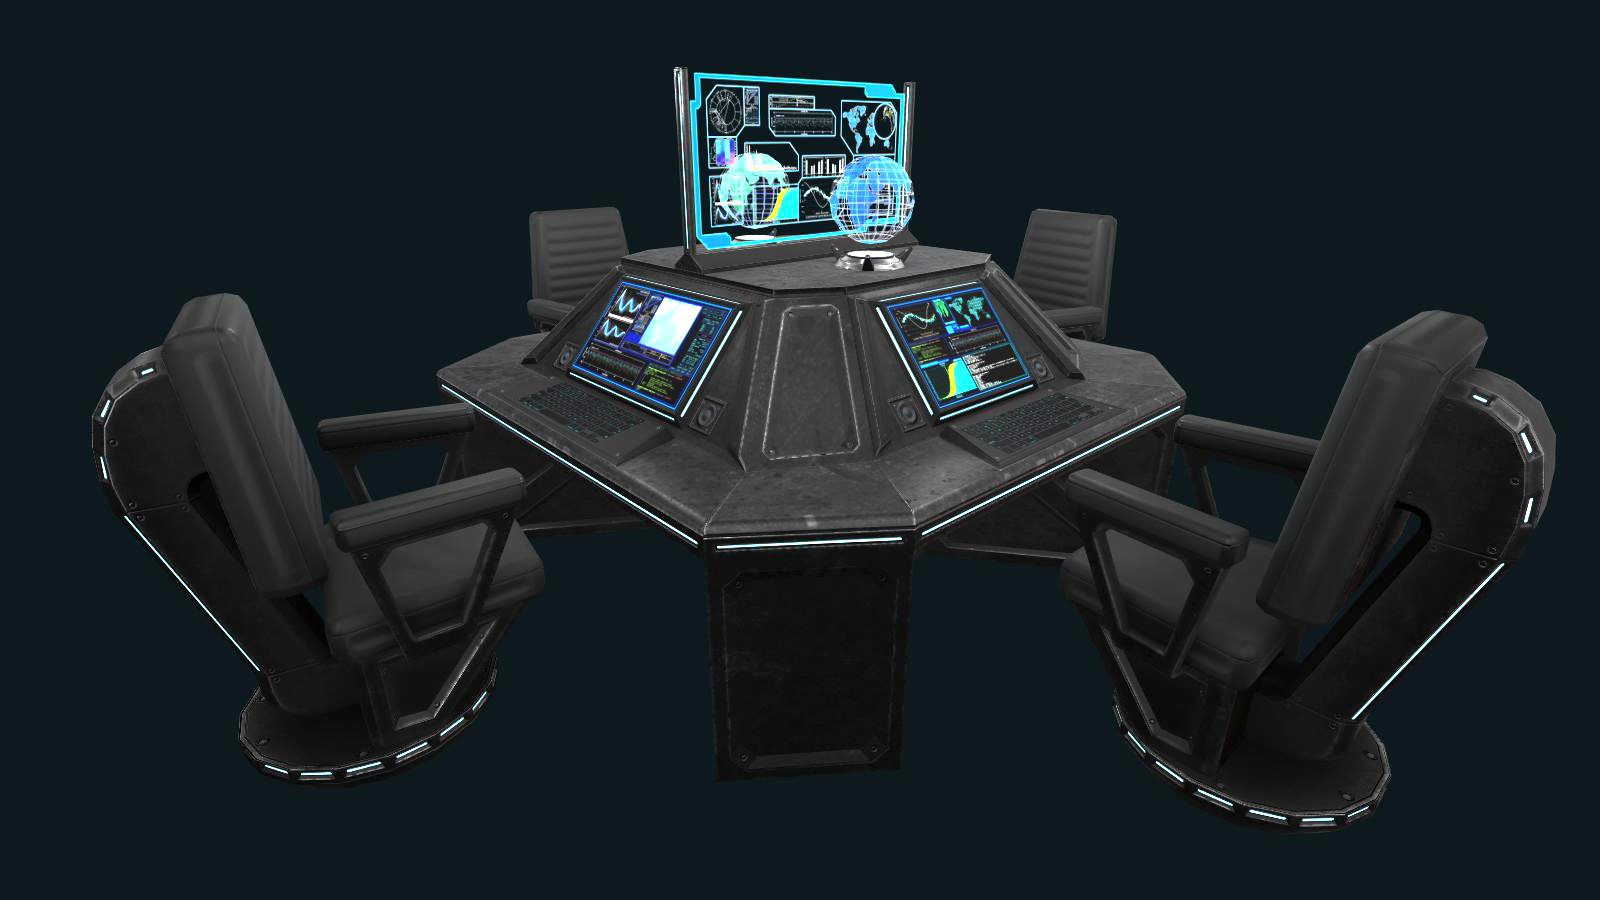 Sci-fi Communications Center